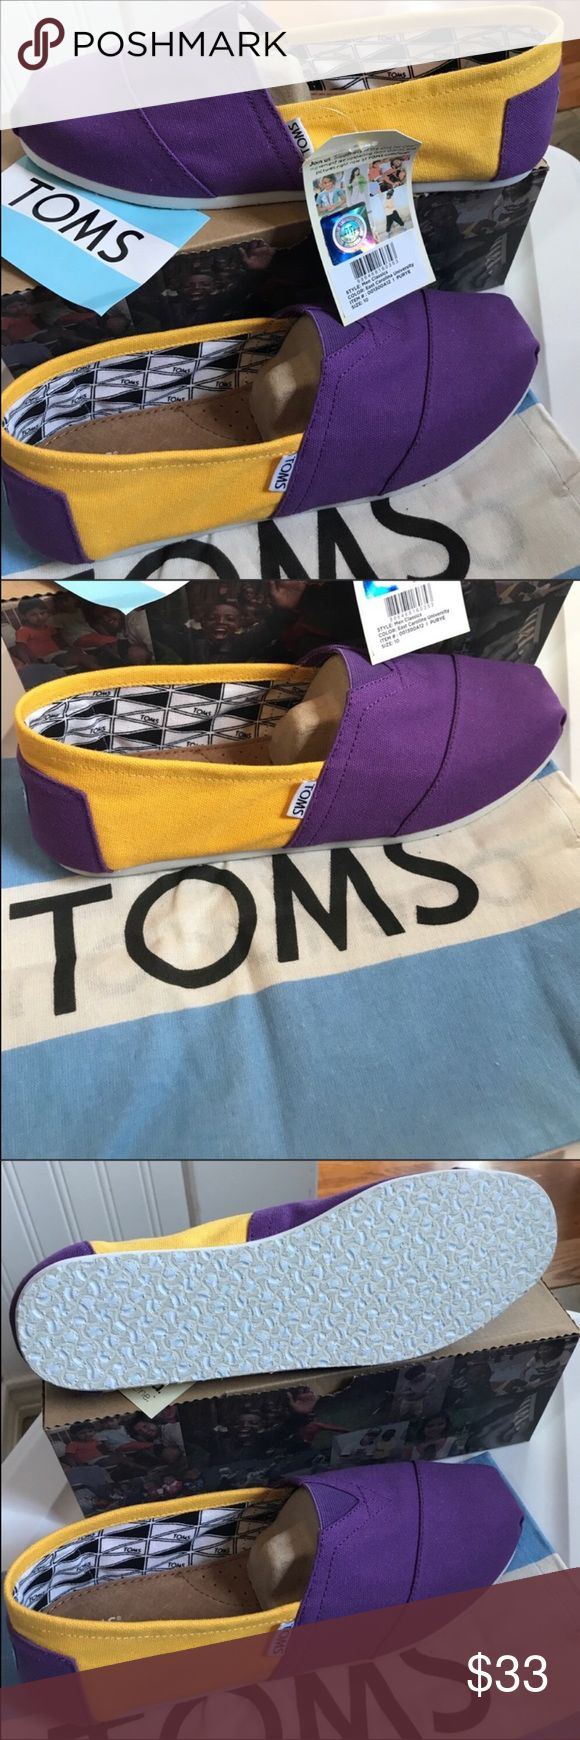 TOMS- East Carolina University colors Classics Purple and gold very summery and crisp. New in box 📦  Light weight canvas slipons, the shoe that made TOMS famous! University of East Carolina University or other schools with Purple and gold. Classic Canvas TOMS, East Carolina University Toms Shoes